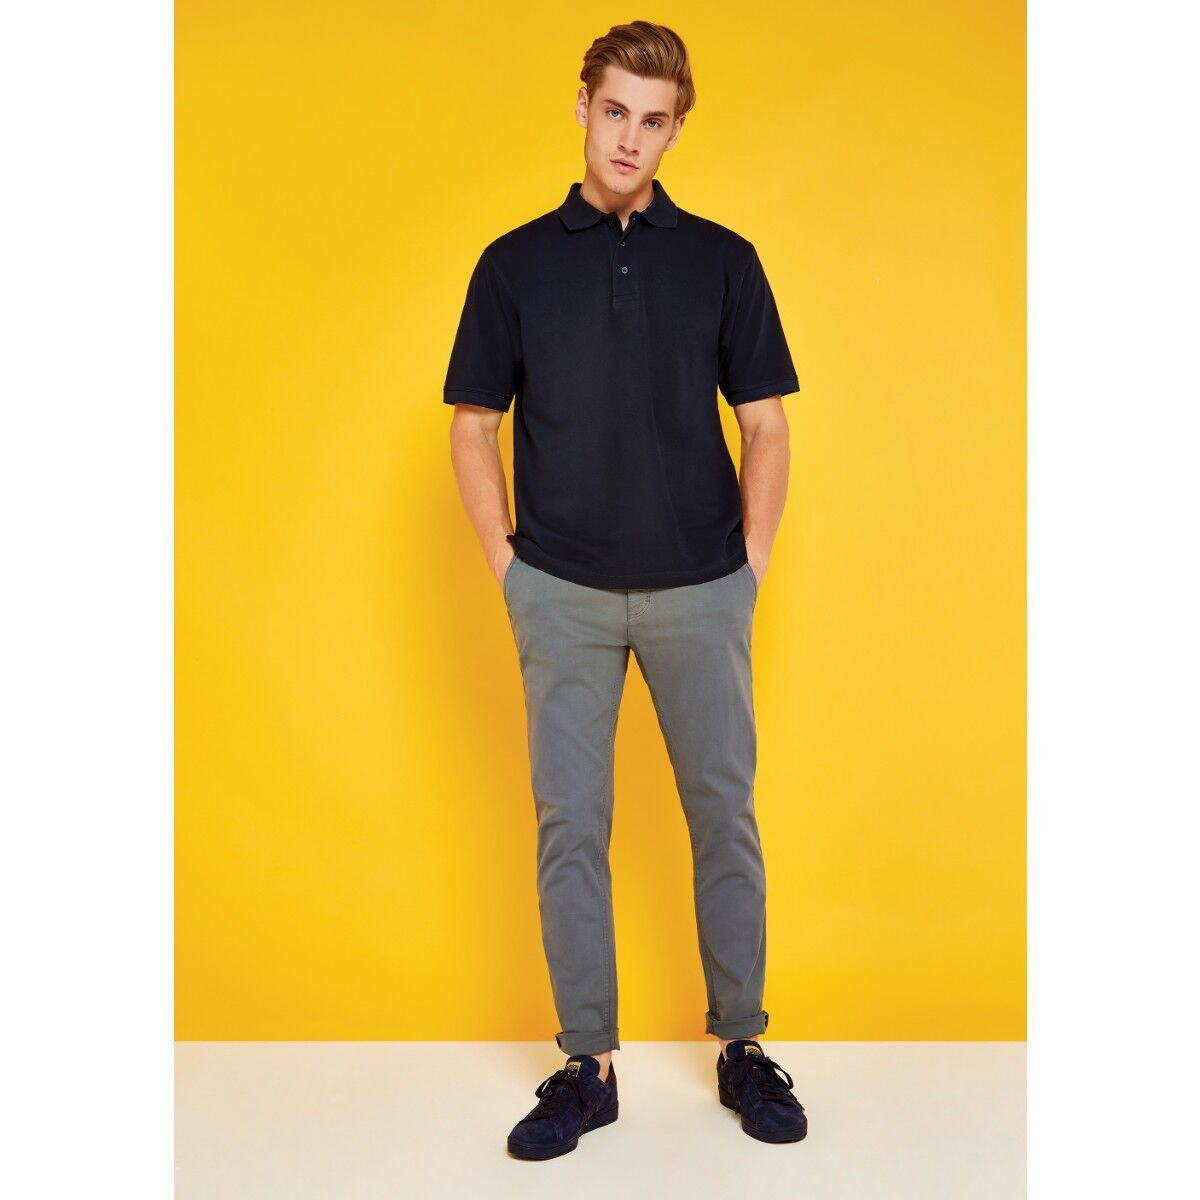 Kutom Kit Cotton Klassic Polo Shirt